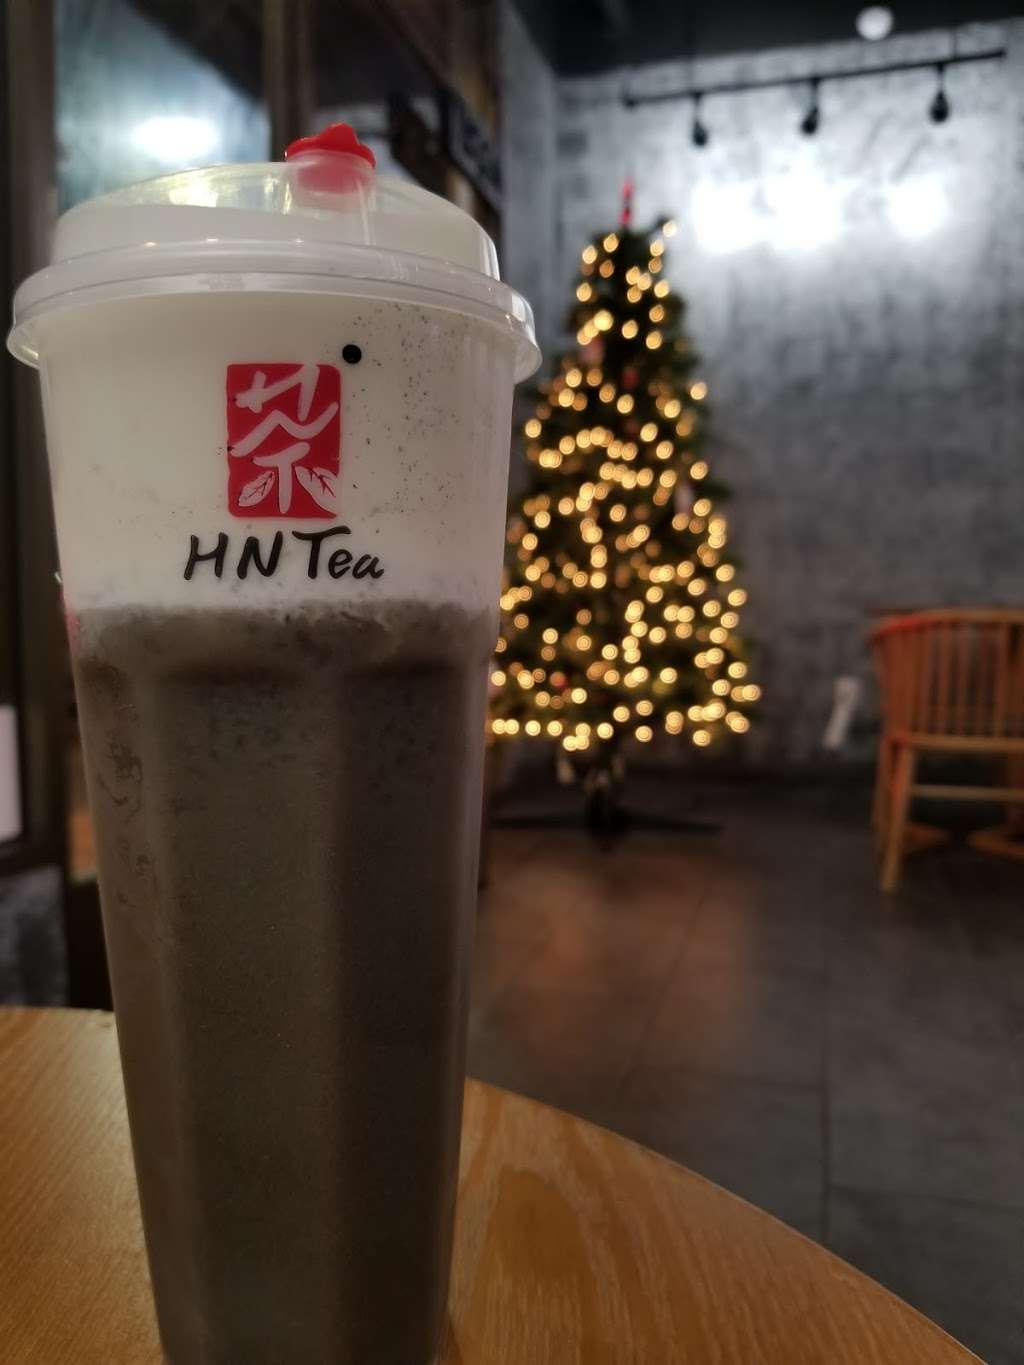 HNTea - Organic Tea House - cafe  | Photo 8 of 10 | Address: 14001 Newport Ave #E, Tustin, CA 92780, USA | Phone: (657) 600-8556